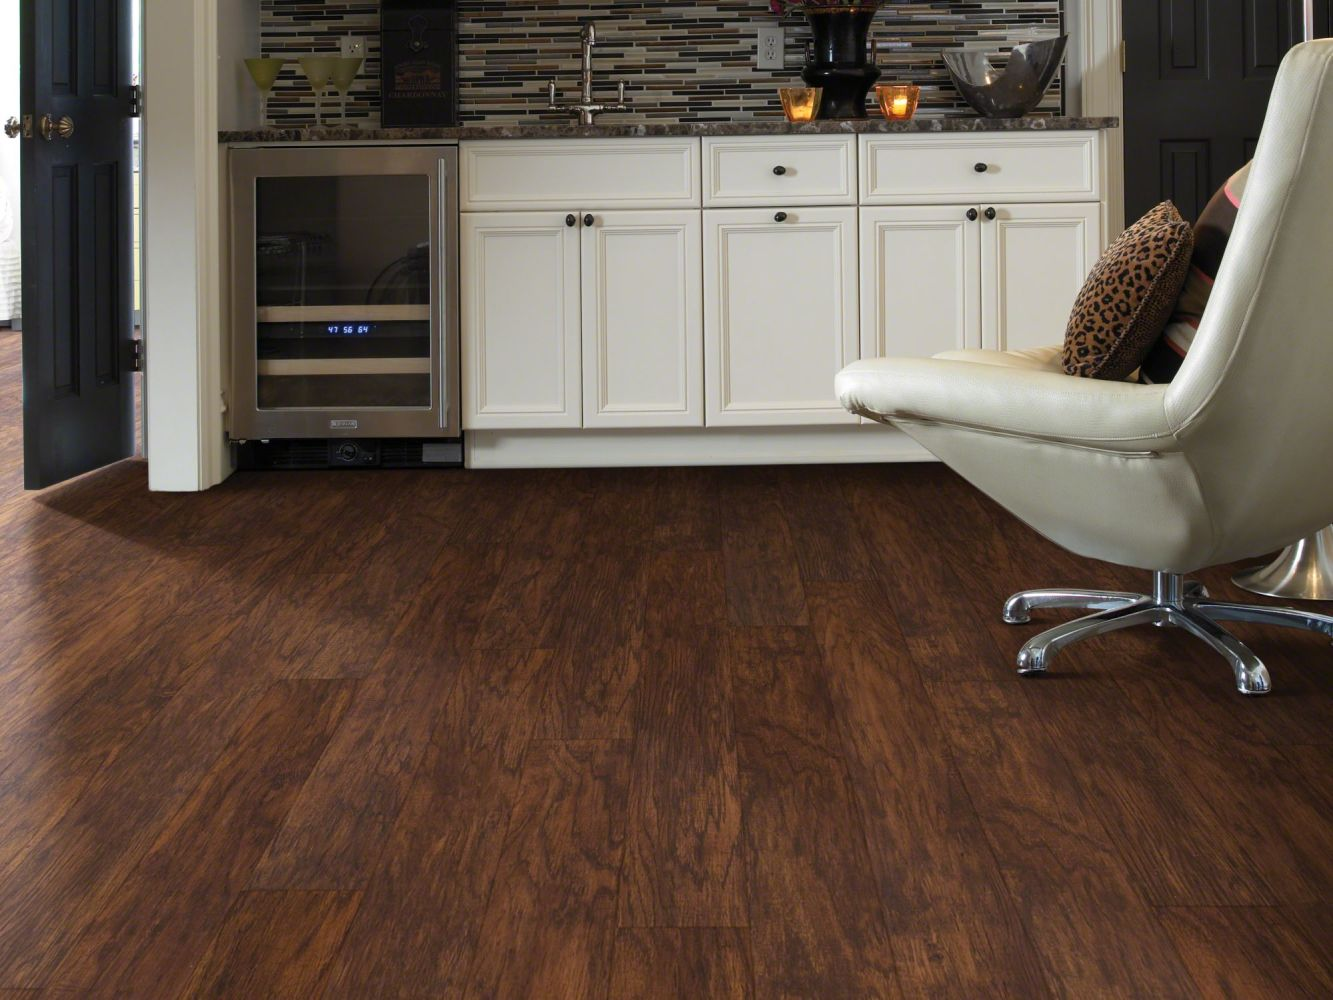 Shaw Floors Resilient Residential Classico Plank Rosso 00710_0426V